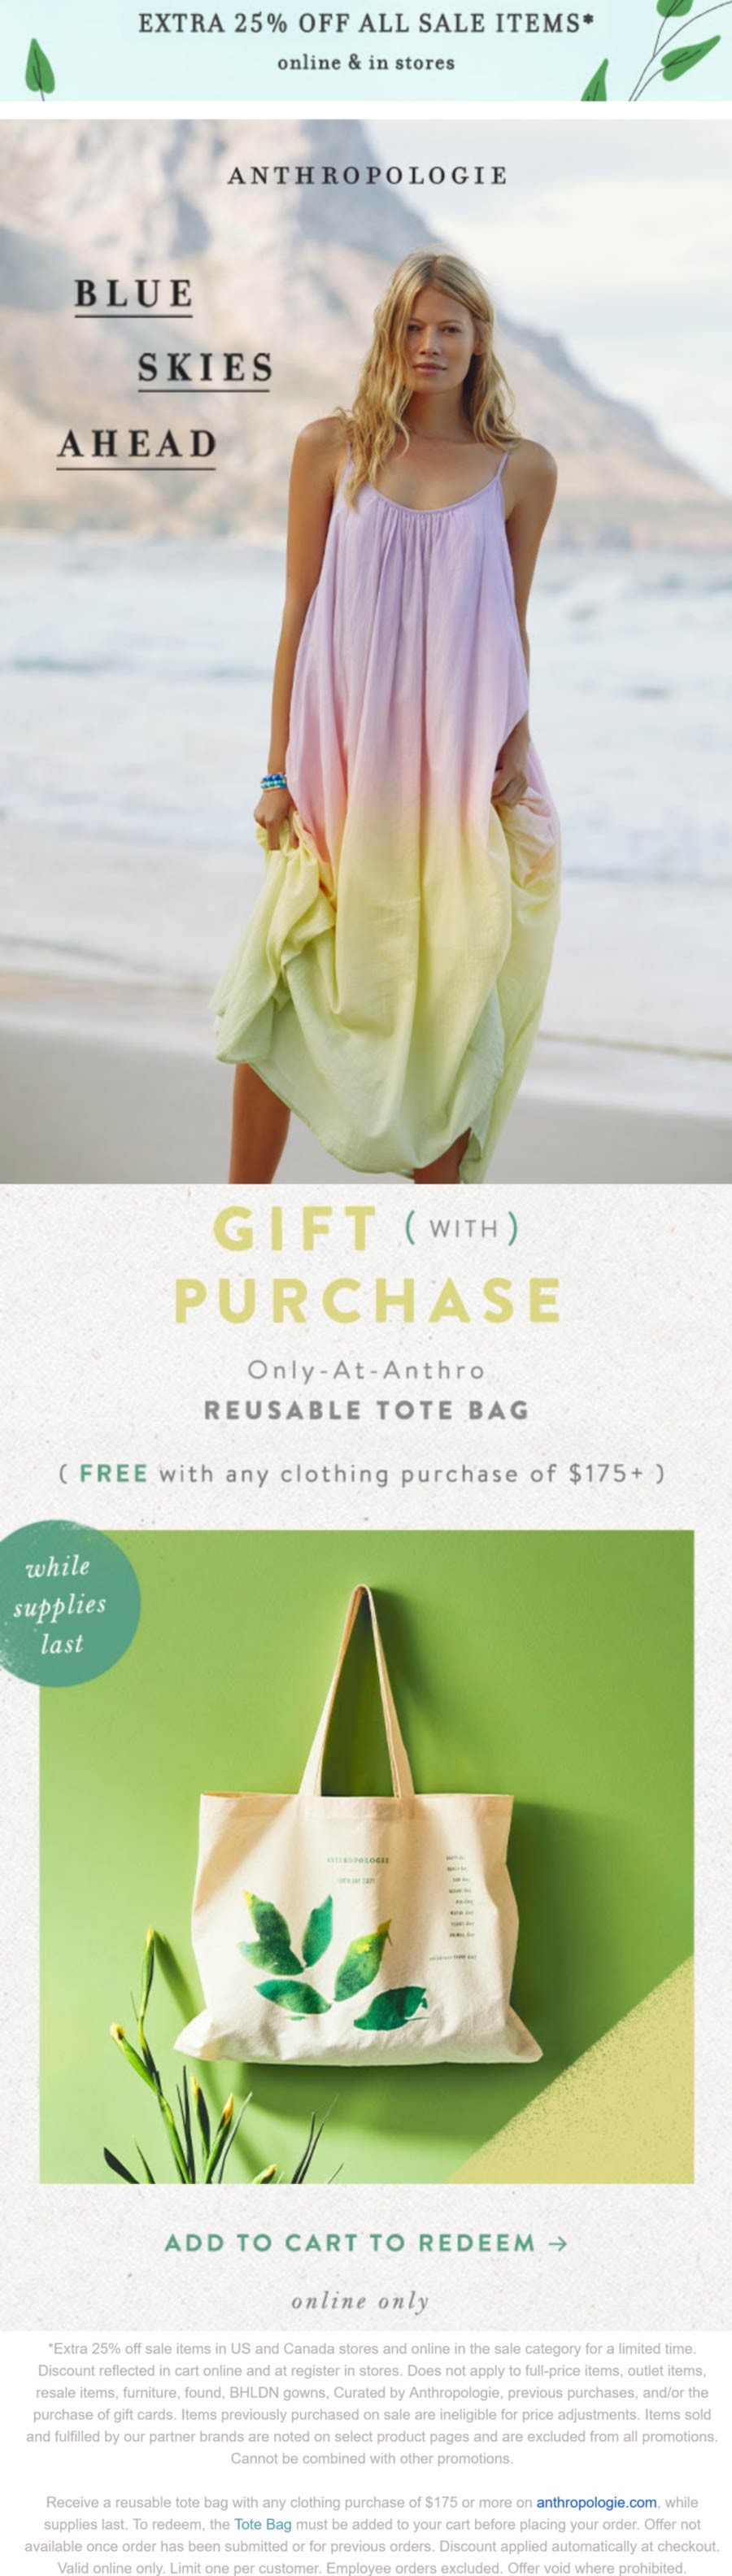 Anthropologie stores Coupon  Extra 25% off sale items at Anthropologie, ditto online + free tote bag on $175 #anthropologie